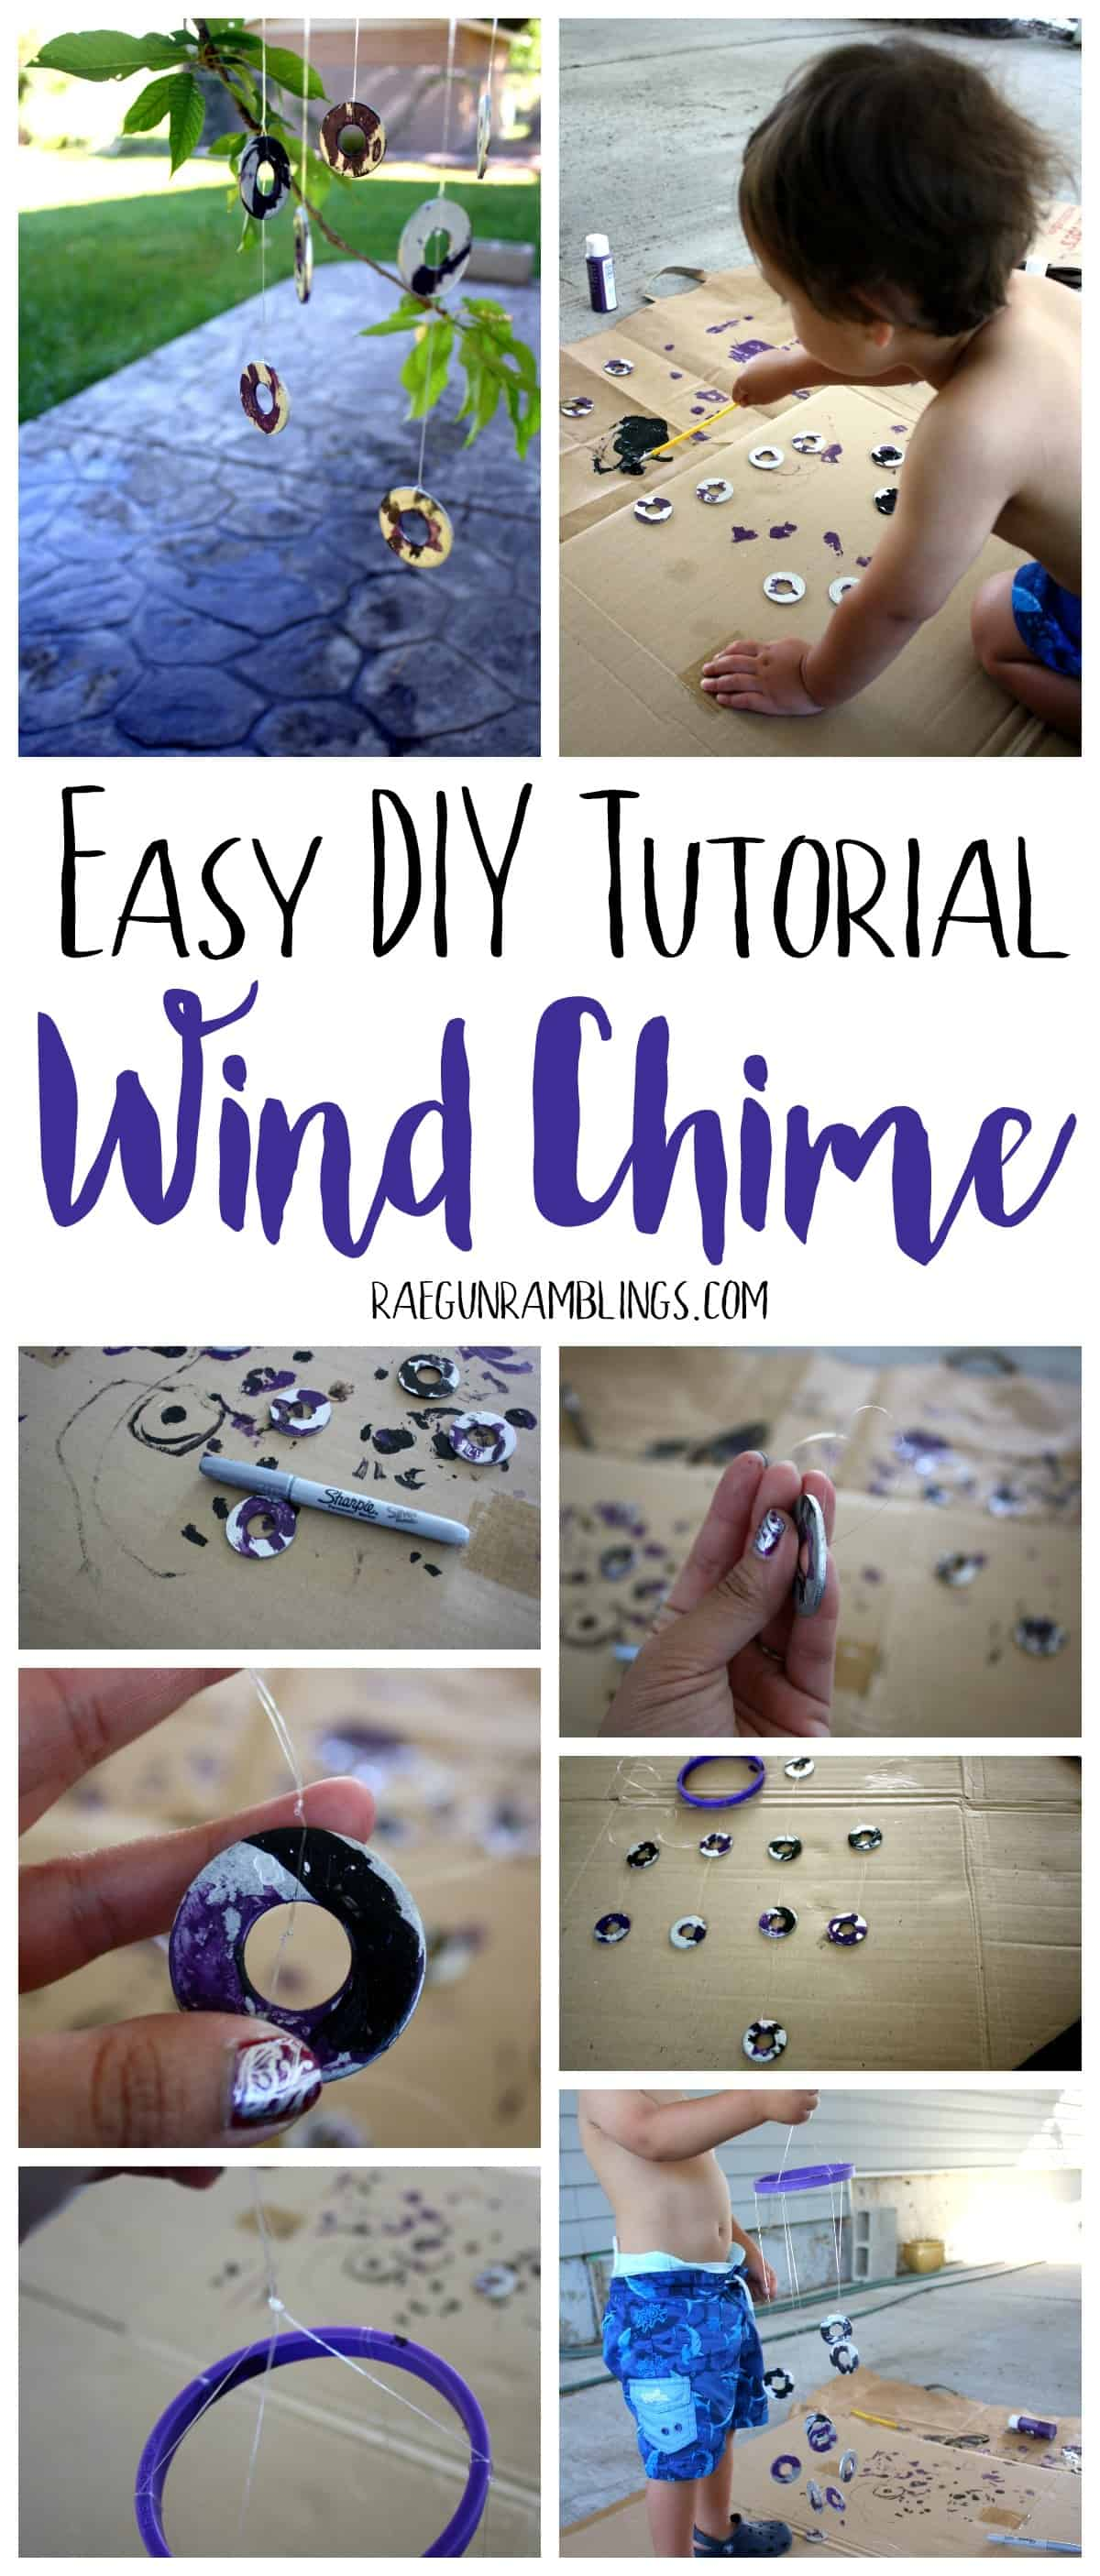 How fun DIY wind chimes perfect activity to do with the kids.